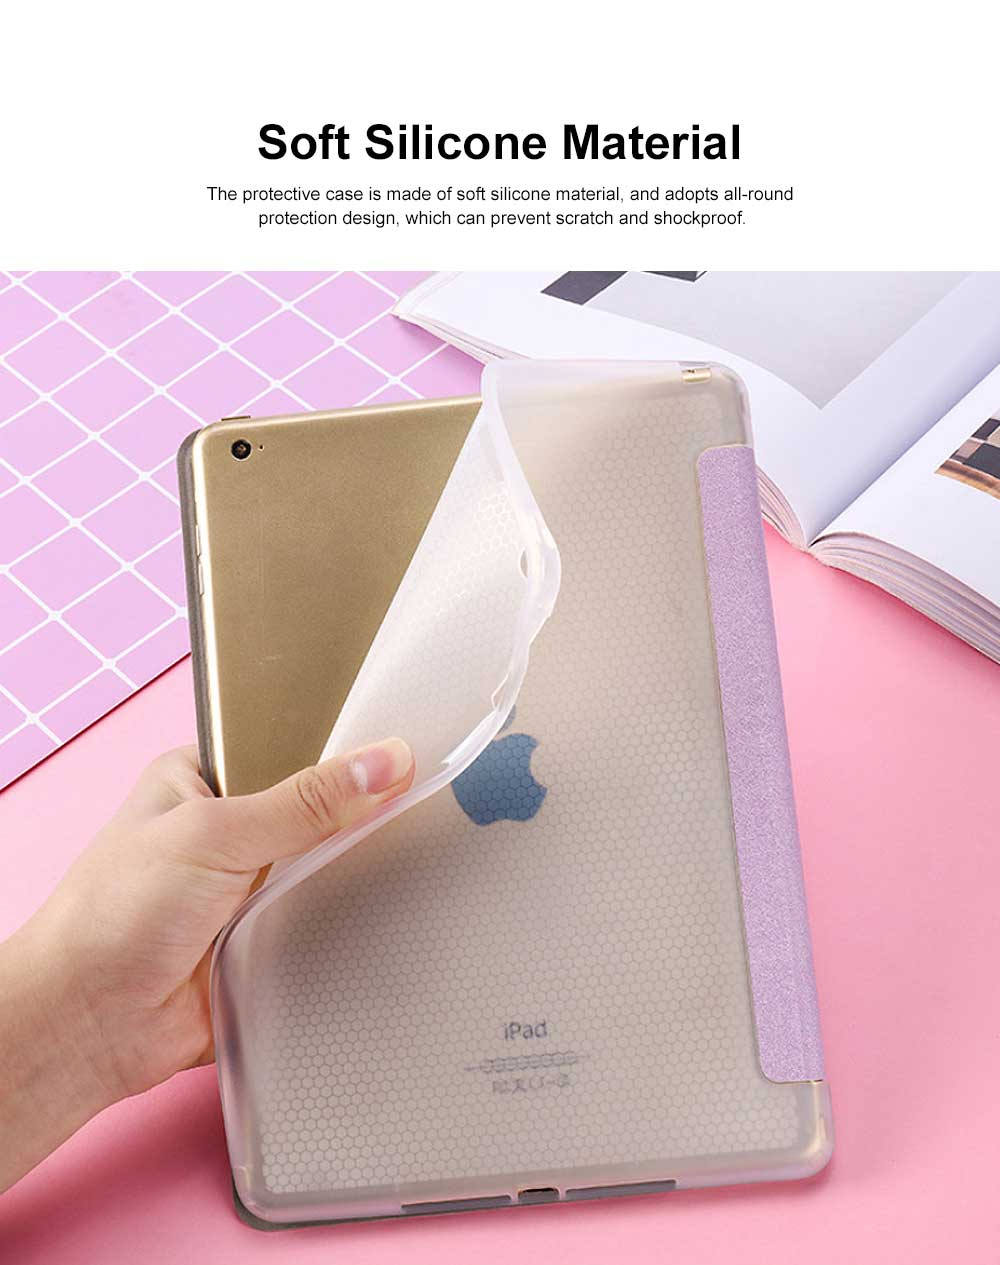 iPad Protective Case, Soft Silicone Tablet PC Protective Cover for iPad 2018 9.7 inch, 2019 New Air 3, Mini 2 3 4 5, Pro 10.5 1